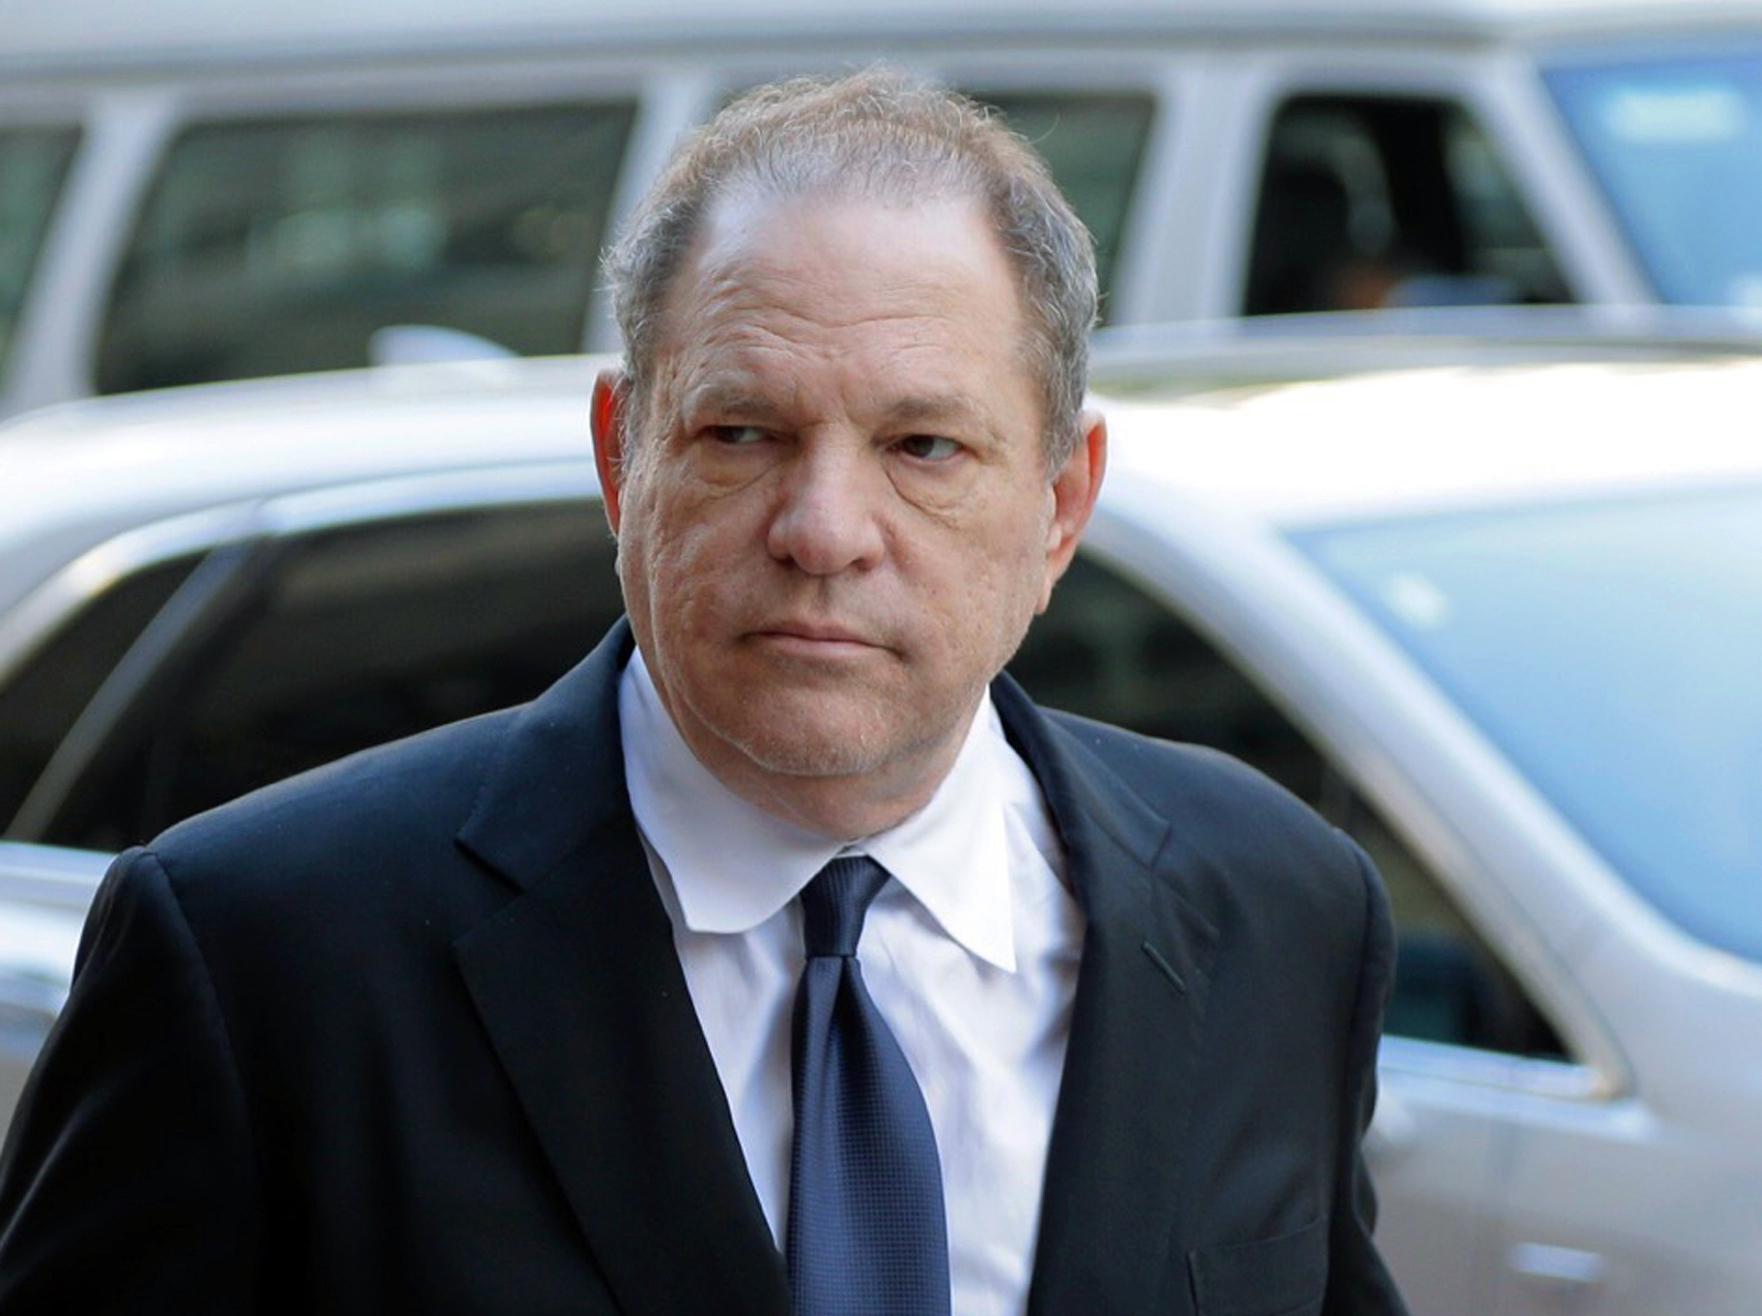 Judge denies Harvey Weinstein motion to dismiss key charges in New York sex crimes case